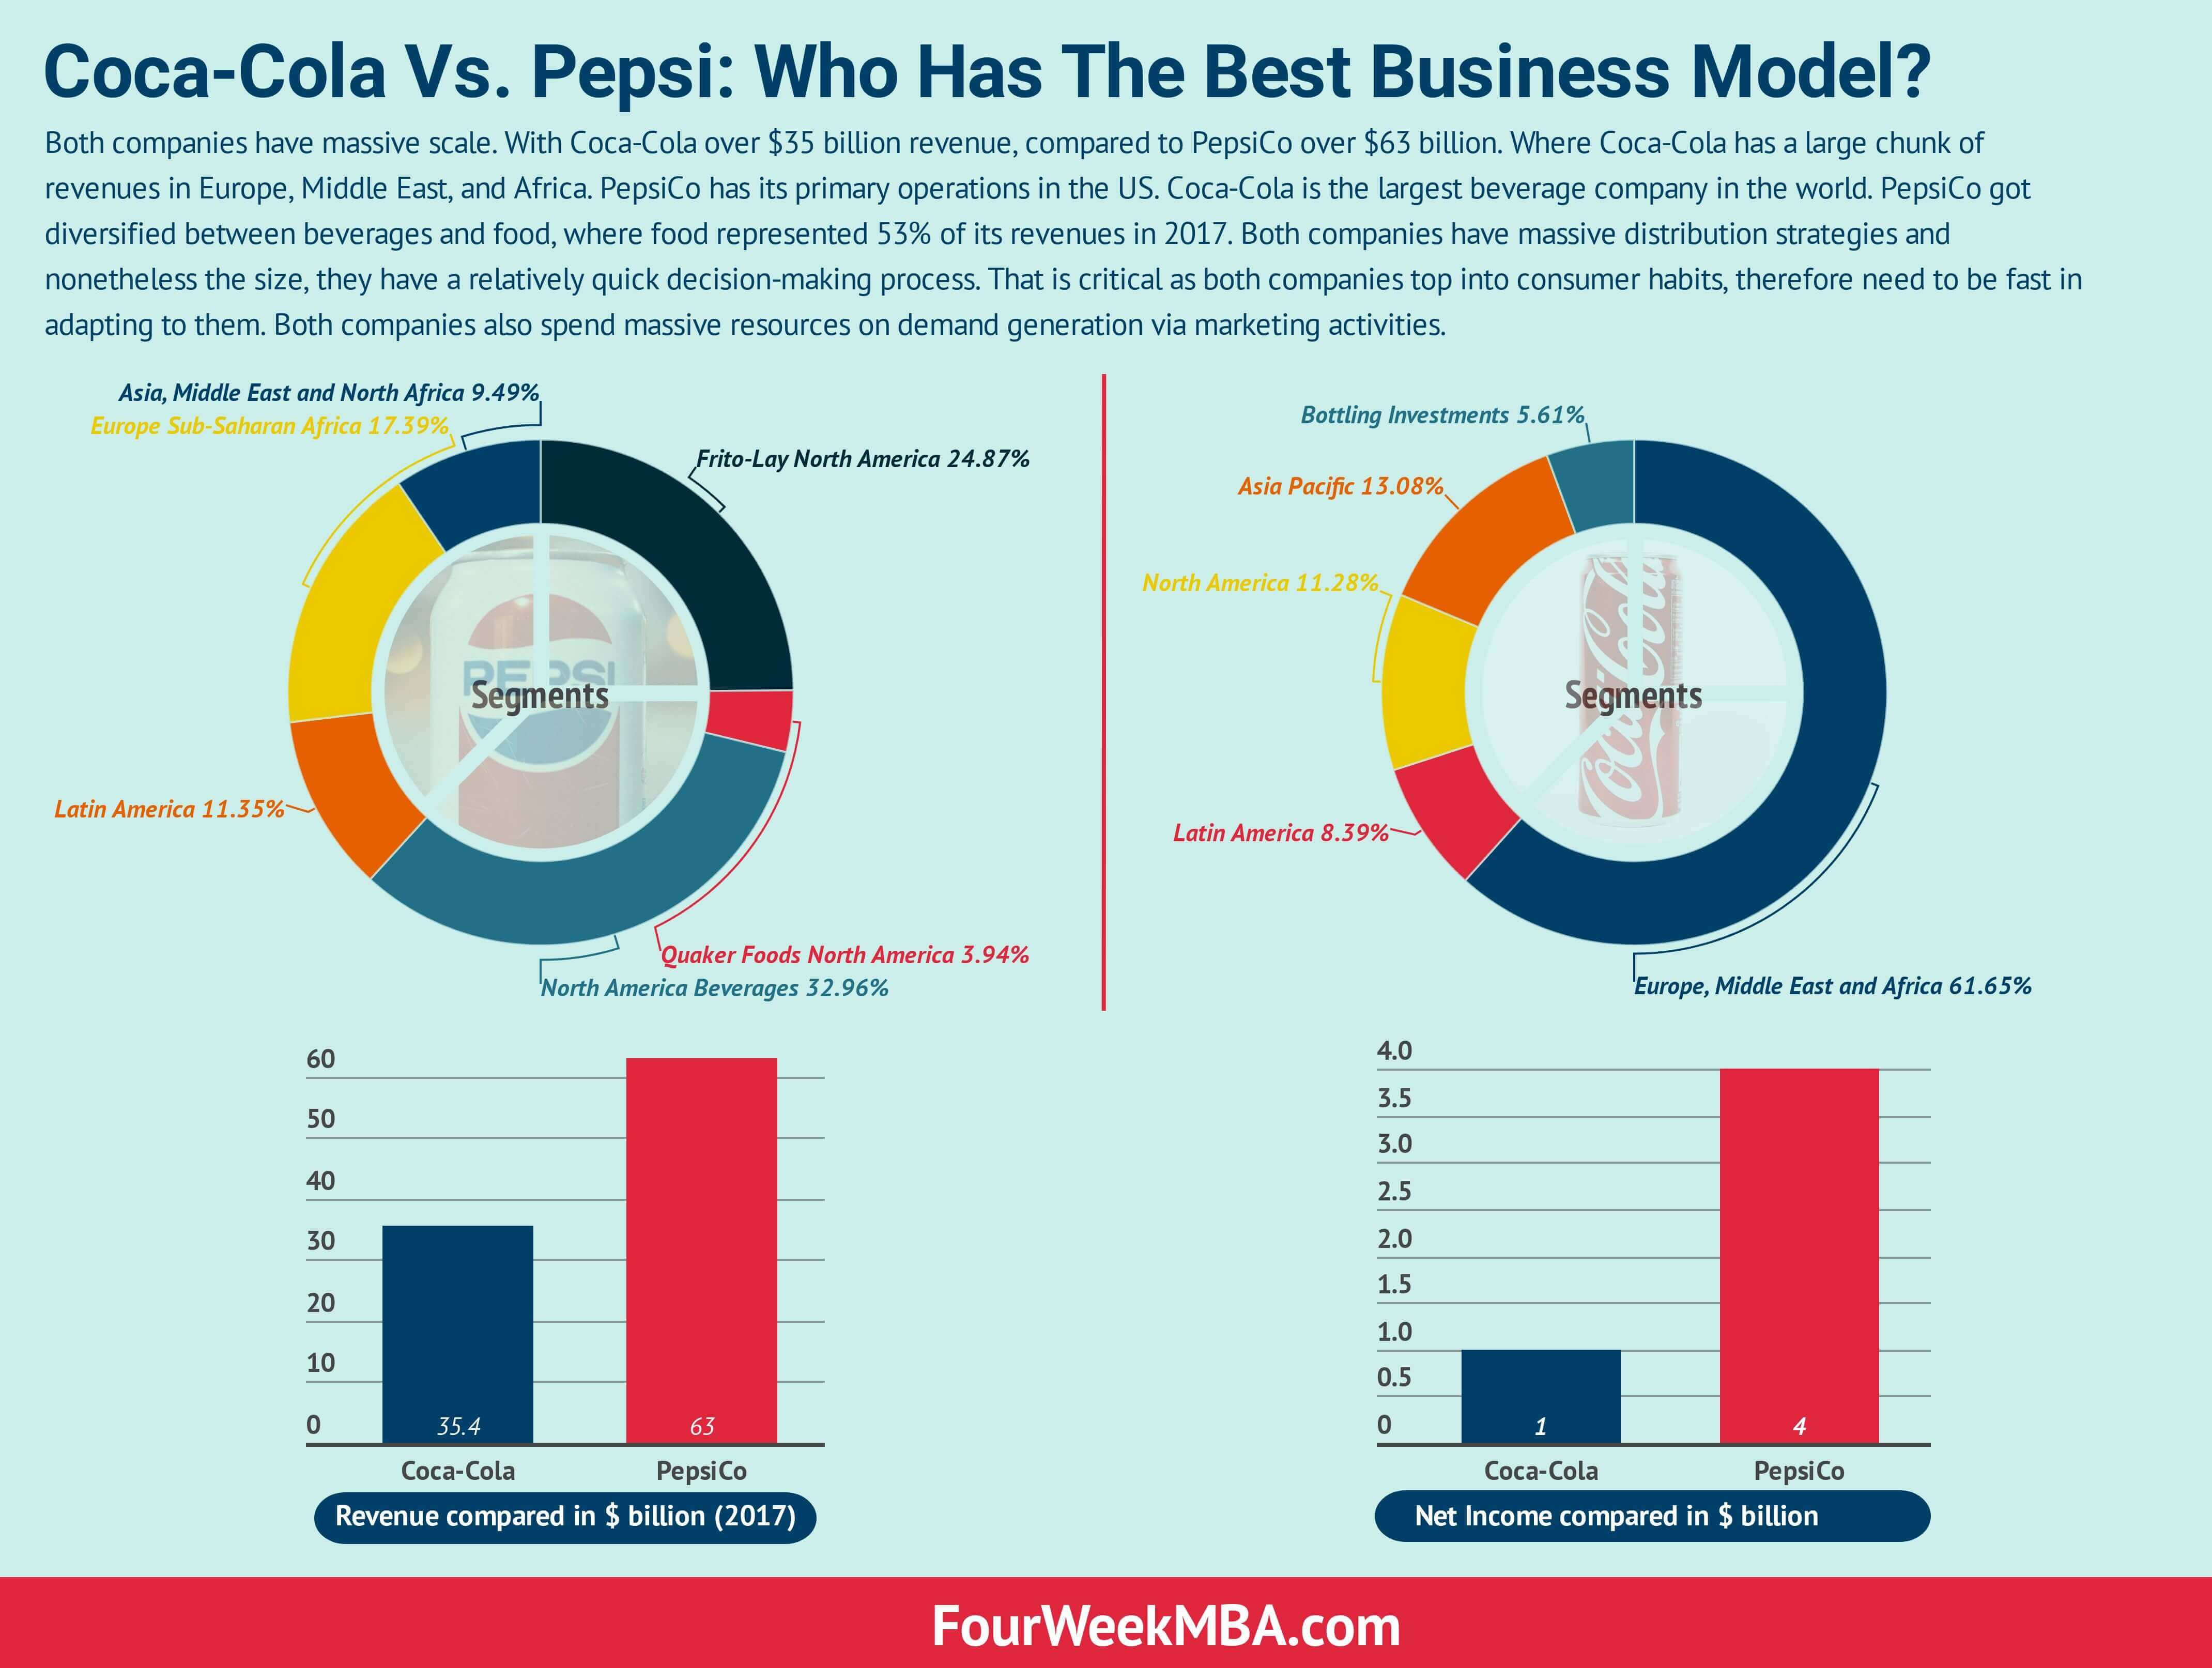 Coca-Cola Vs. Pepsi: Who Has The Best Business Model? - FourWeekMBA